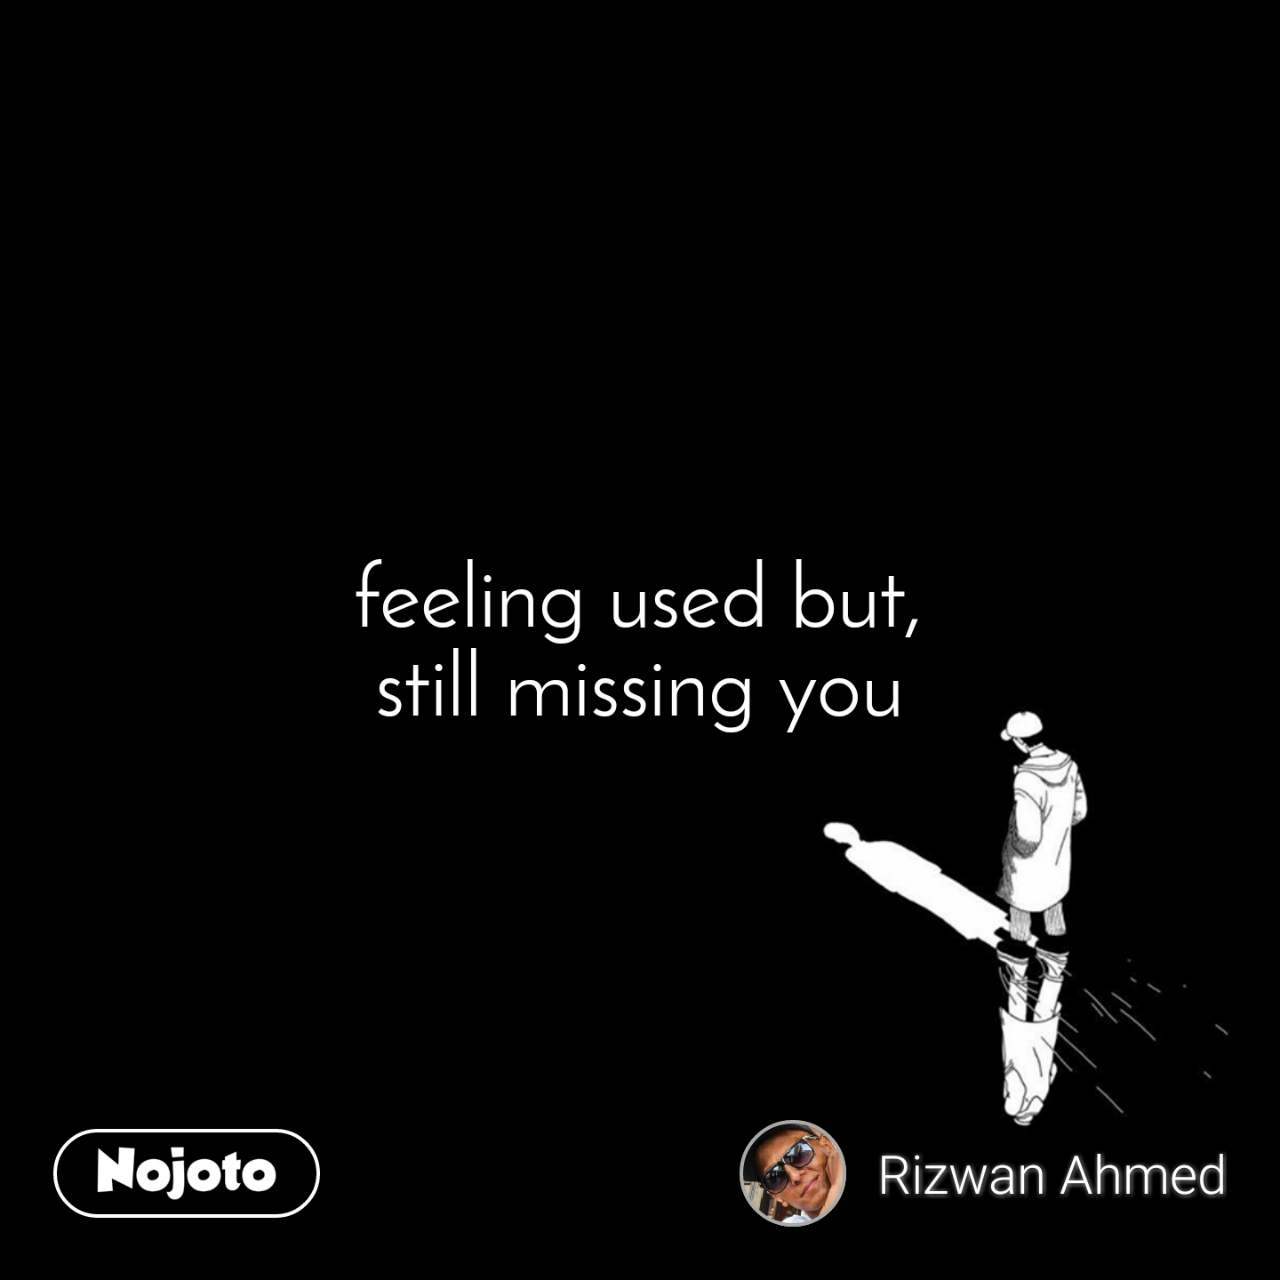 feeling used but, still missing you